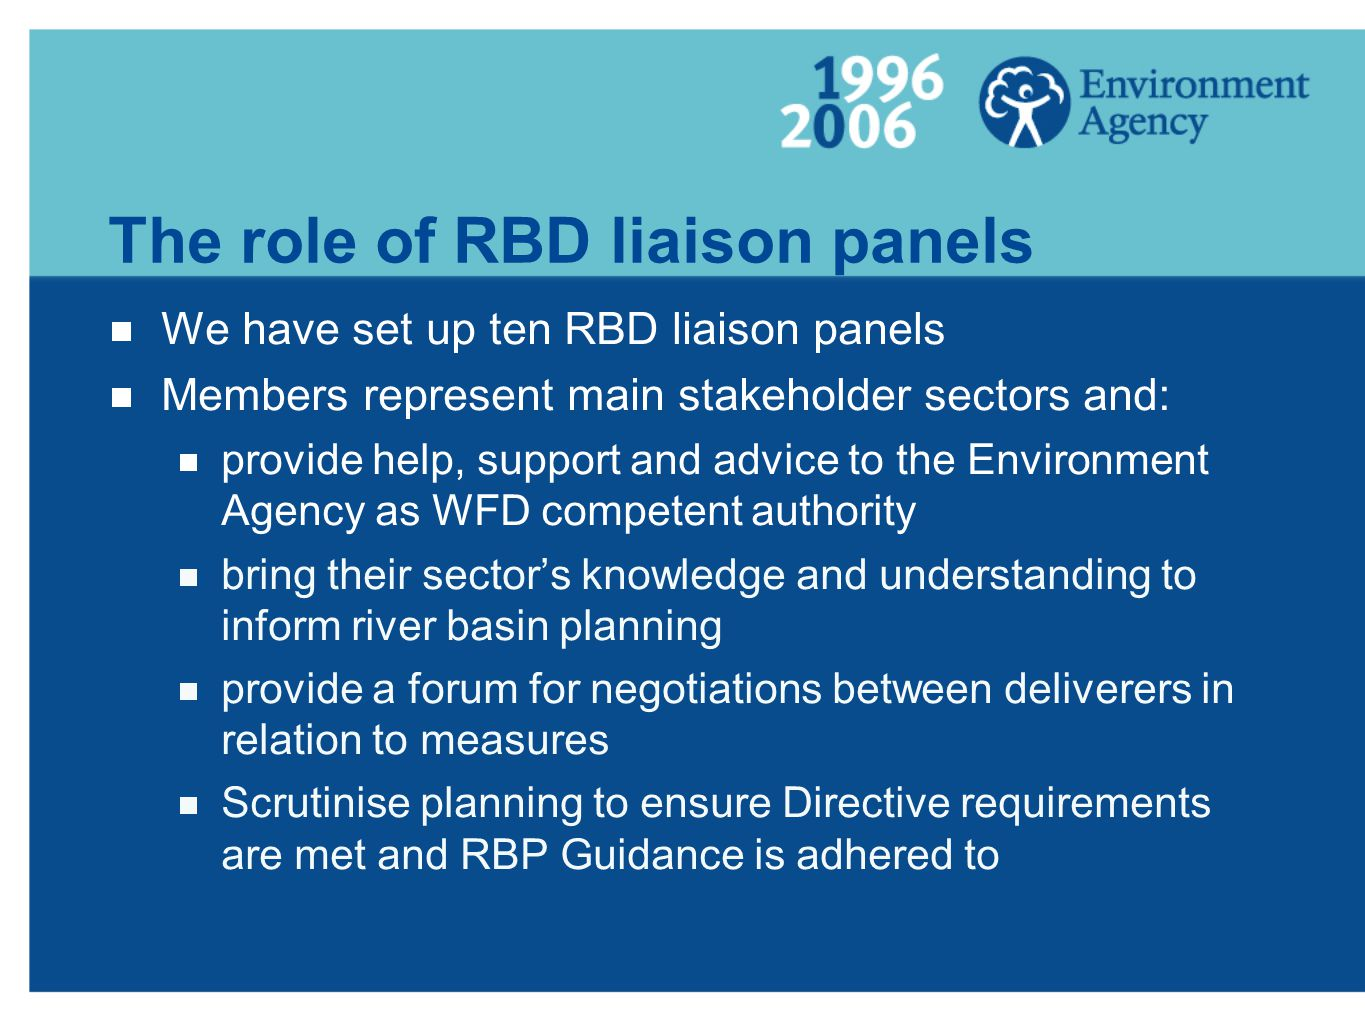 The role of RBD liaison panels We have set up ten RBD liaison panels Members represent main stakeholder sectors and: provide help, support and advice